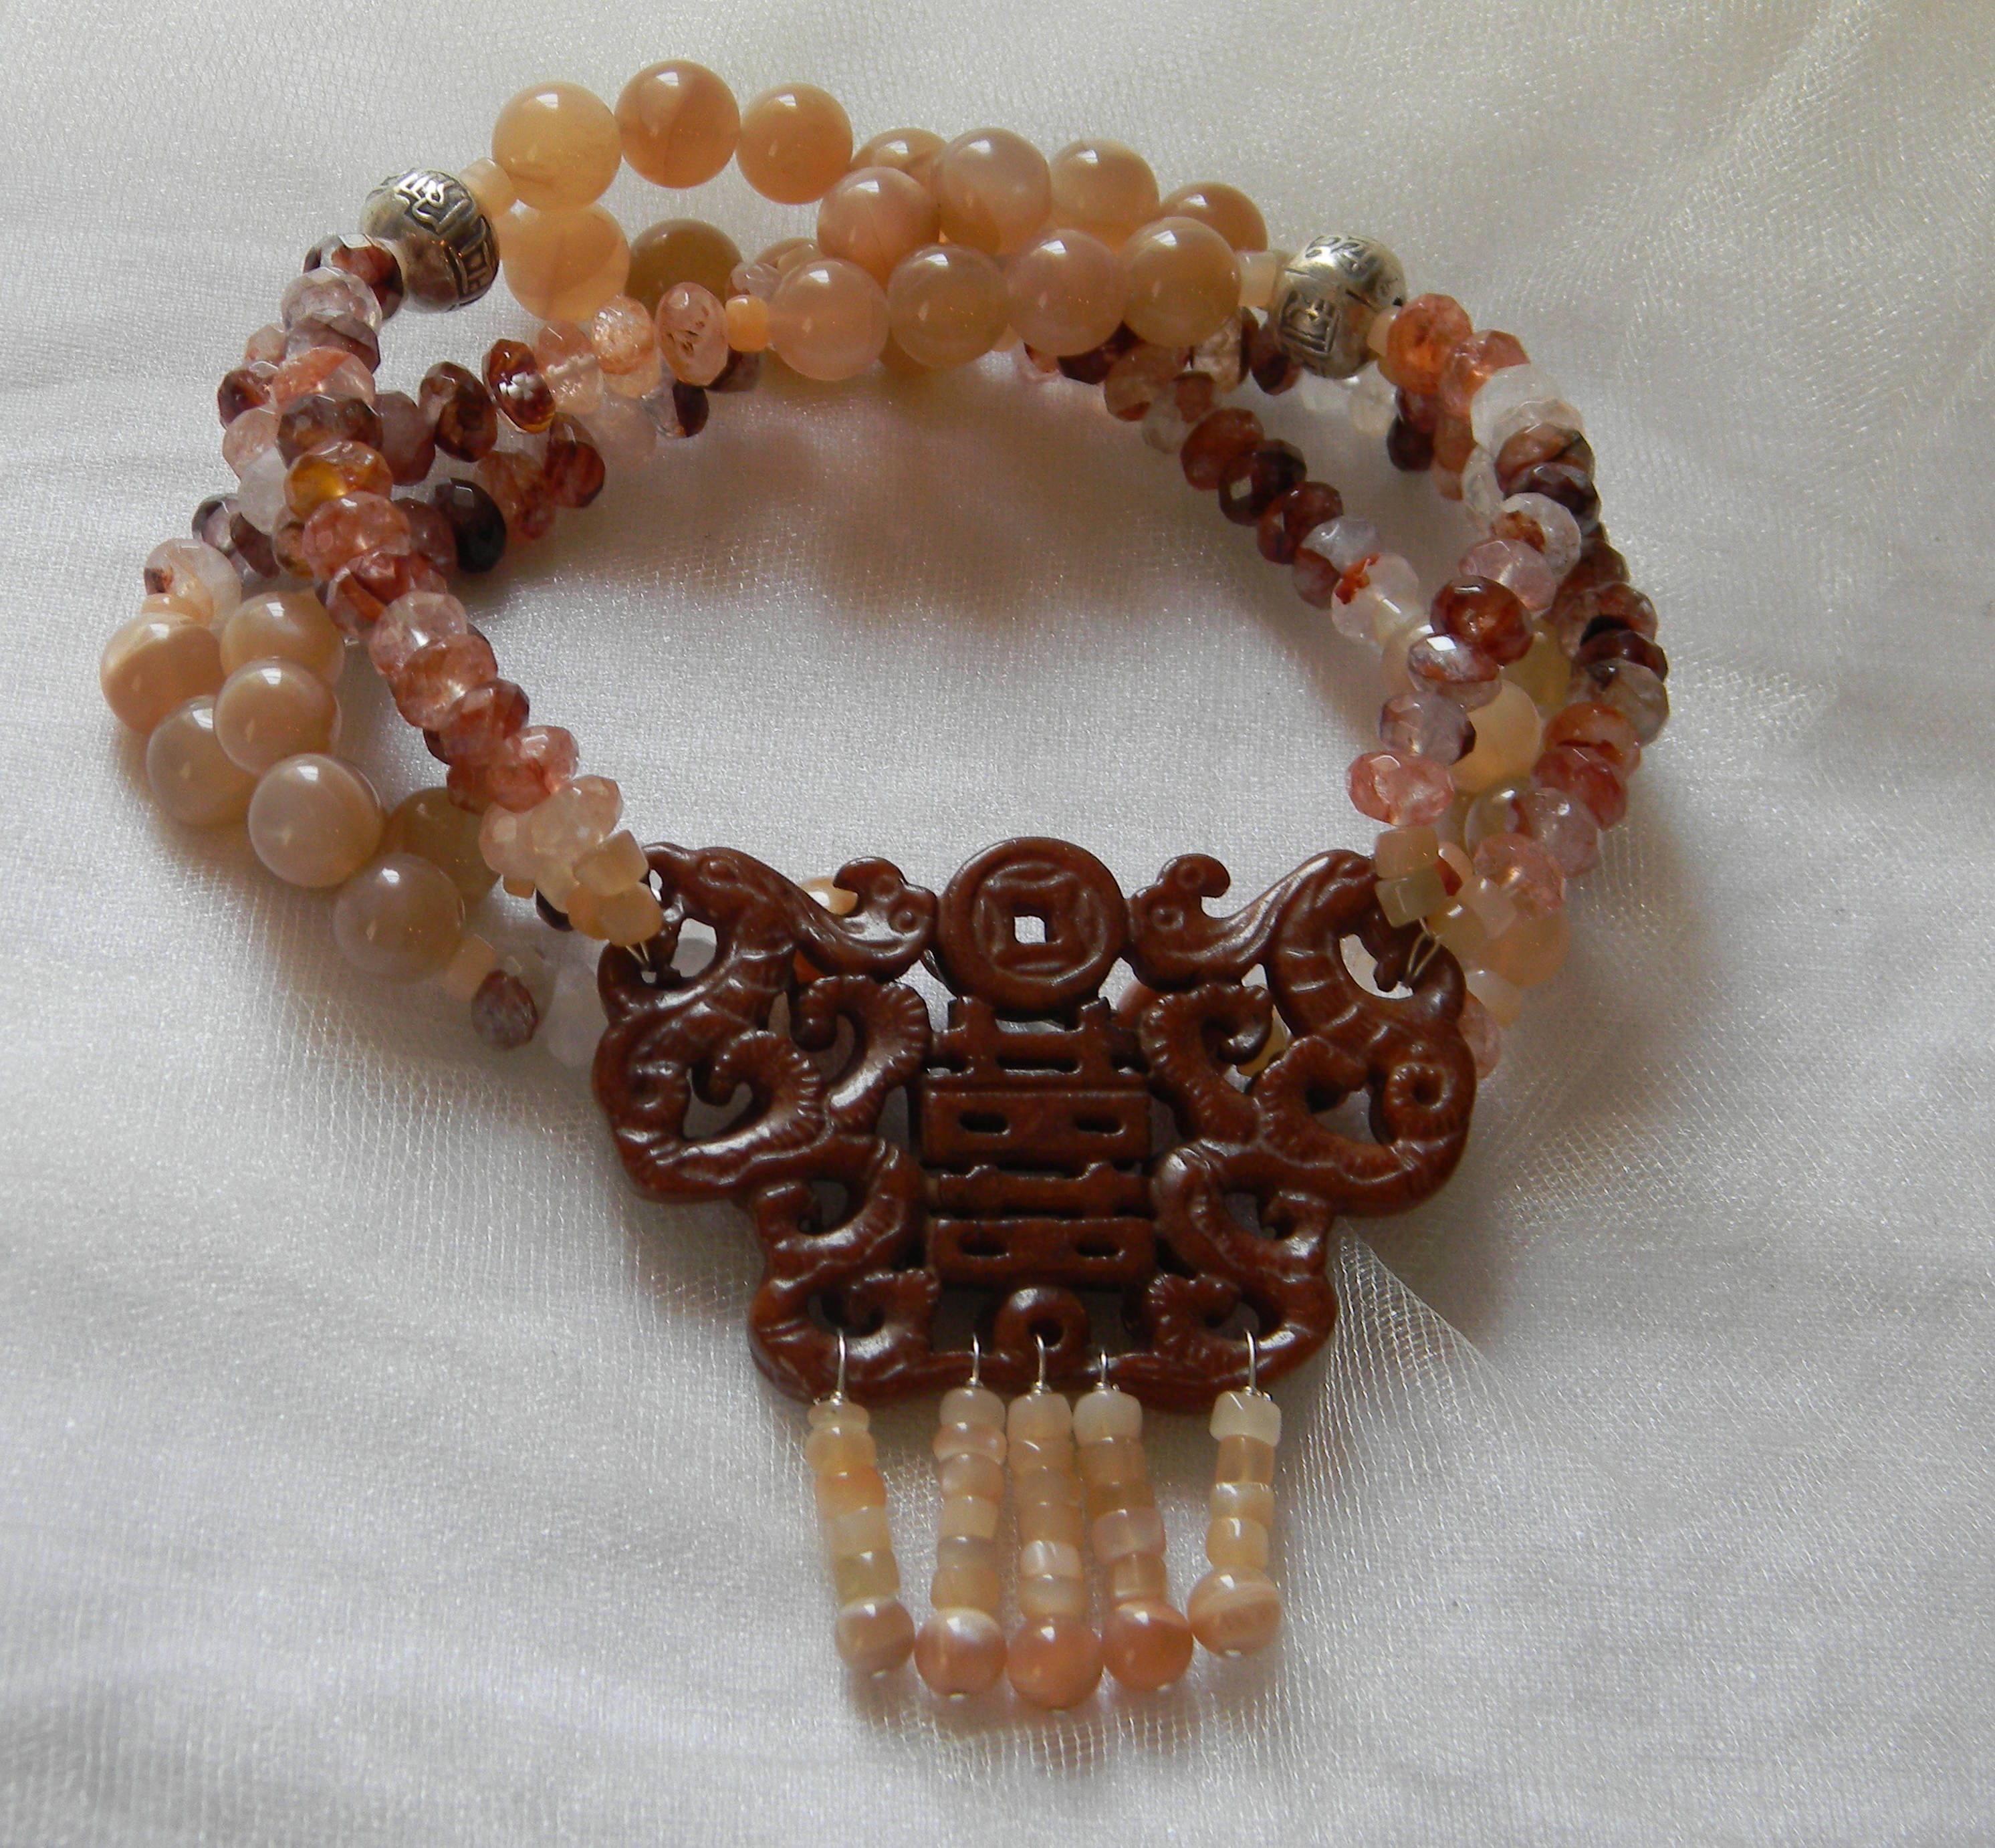 mala products moonstone beads crystal peach malas prickly carnelian healing sunstone dsc pendant warrior necklace pear sedona japa grounded